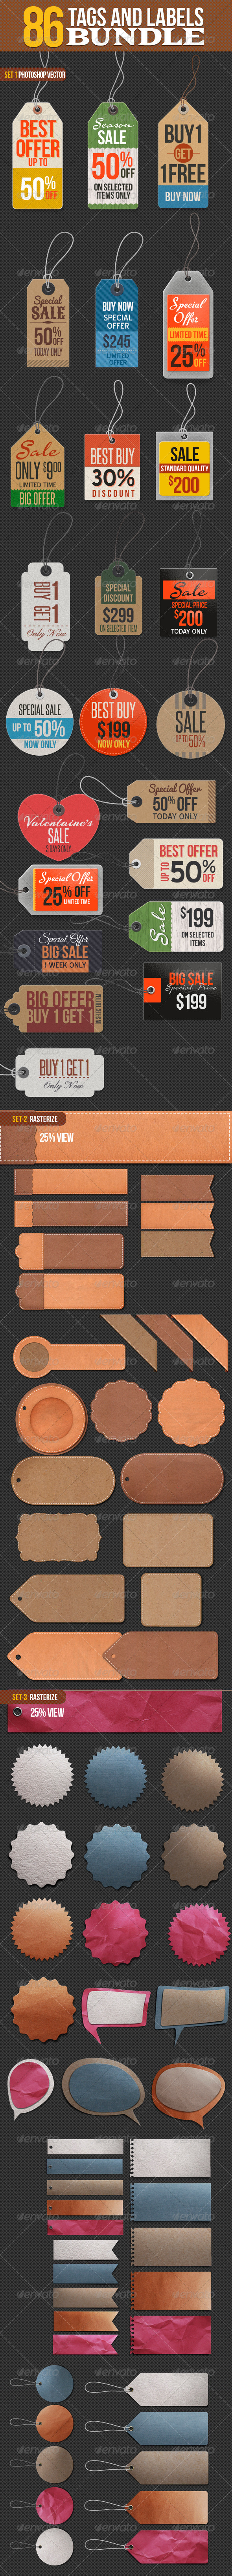 86 Tags and Labels Bundle - Badges & Stickers Web Elements